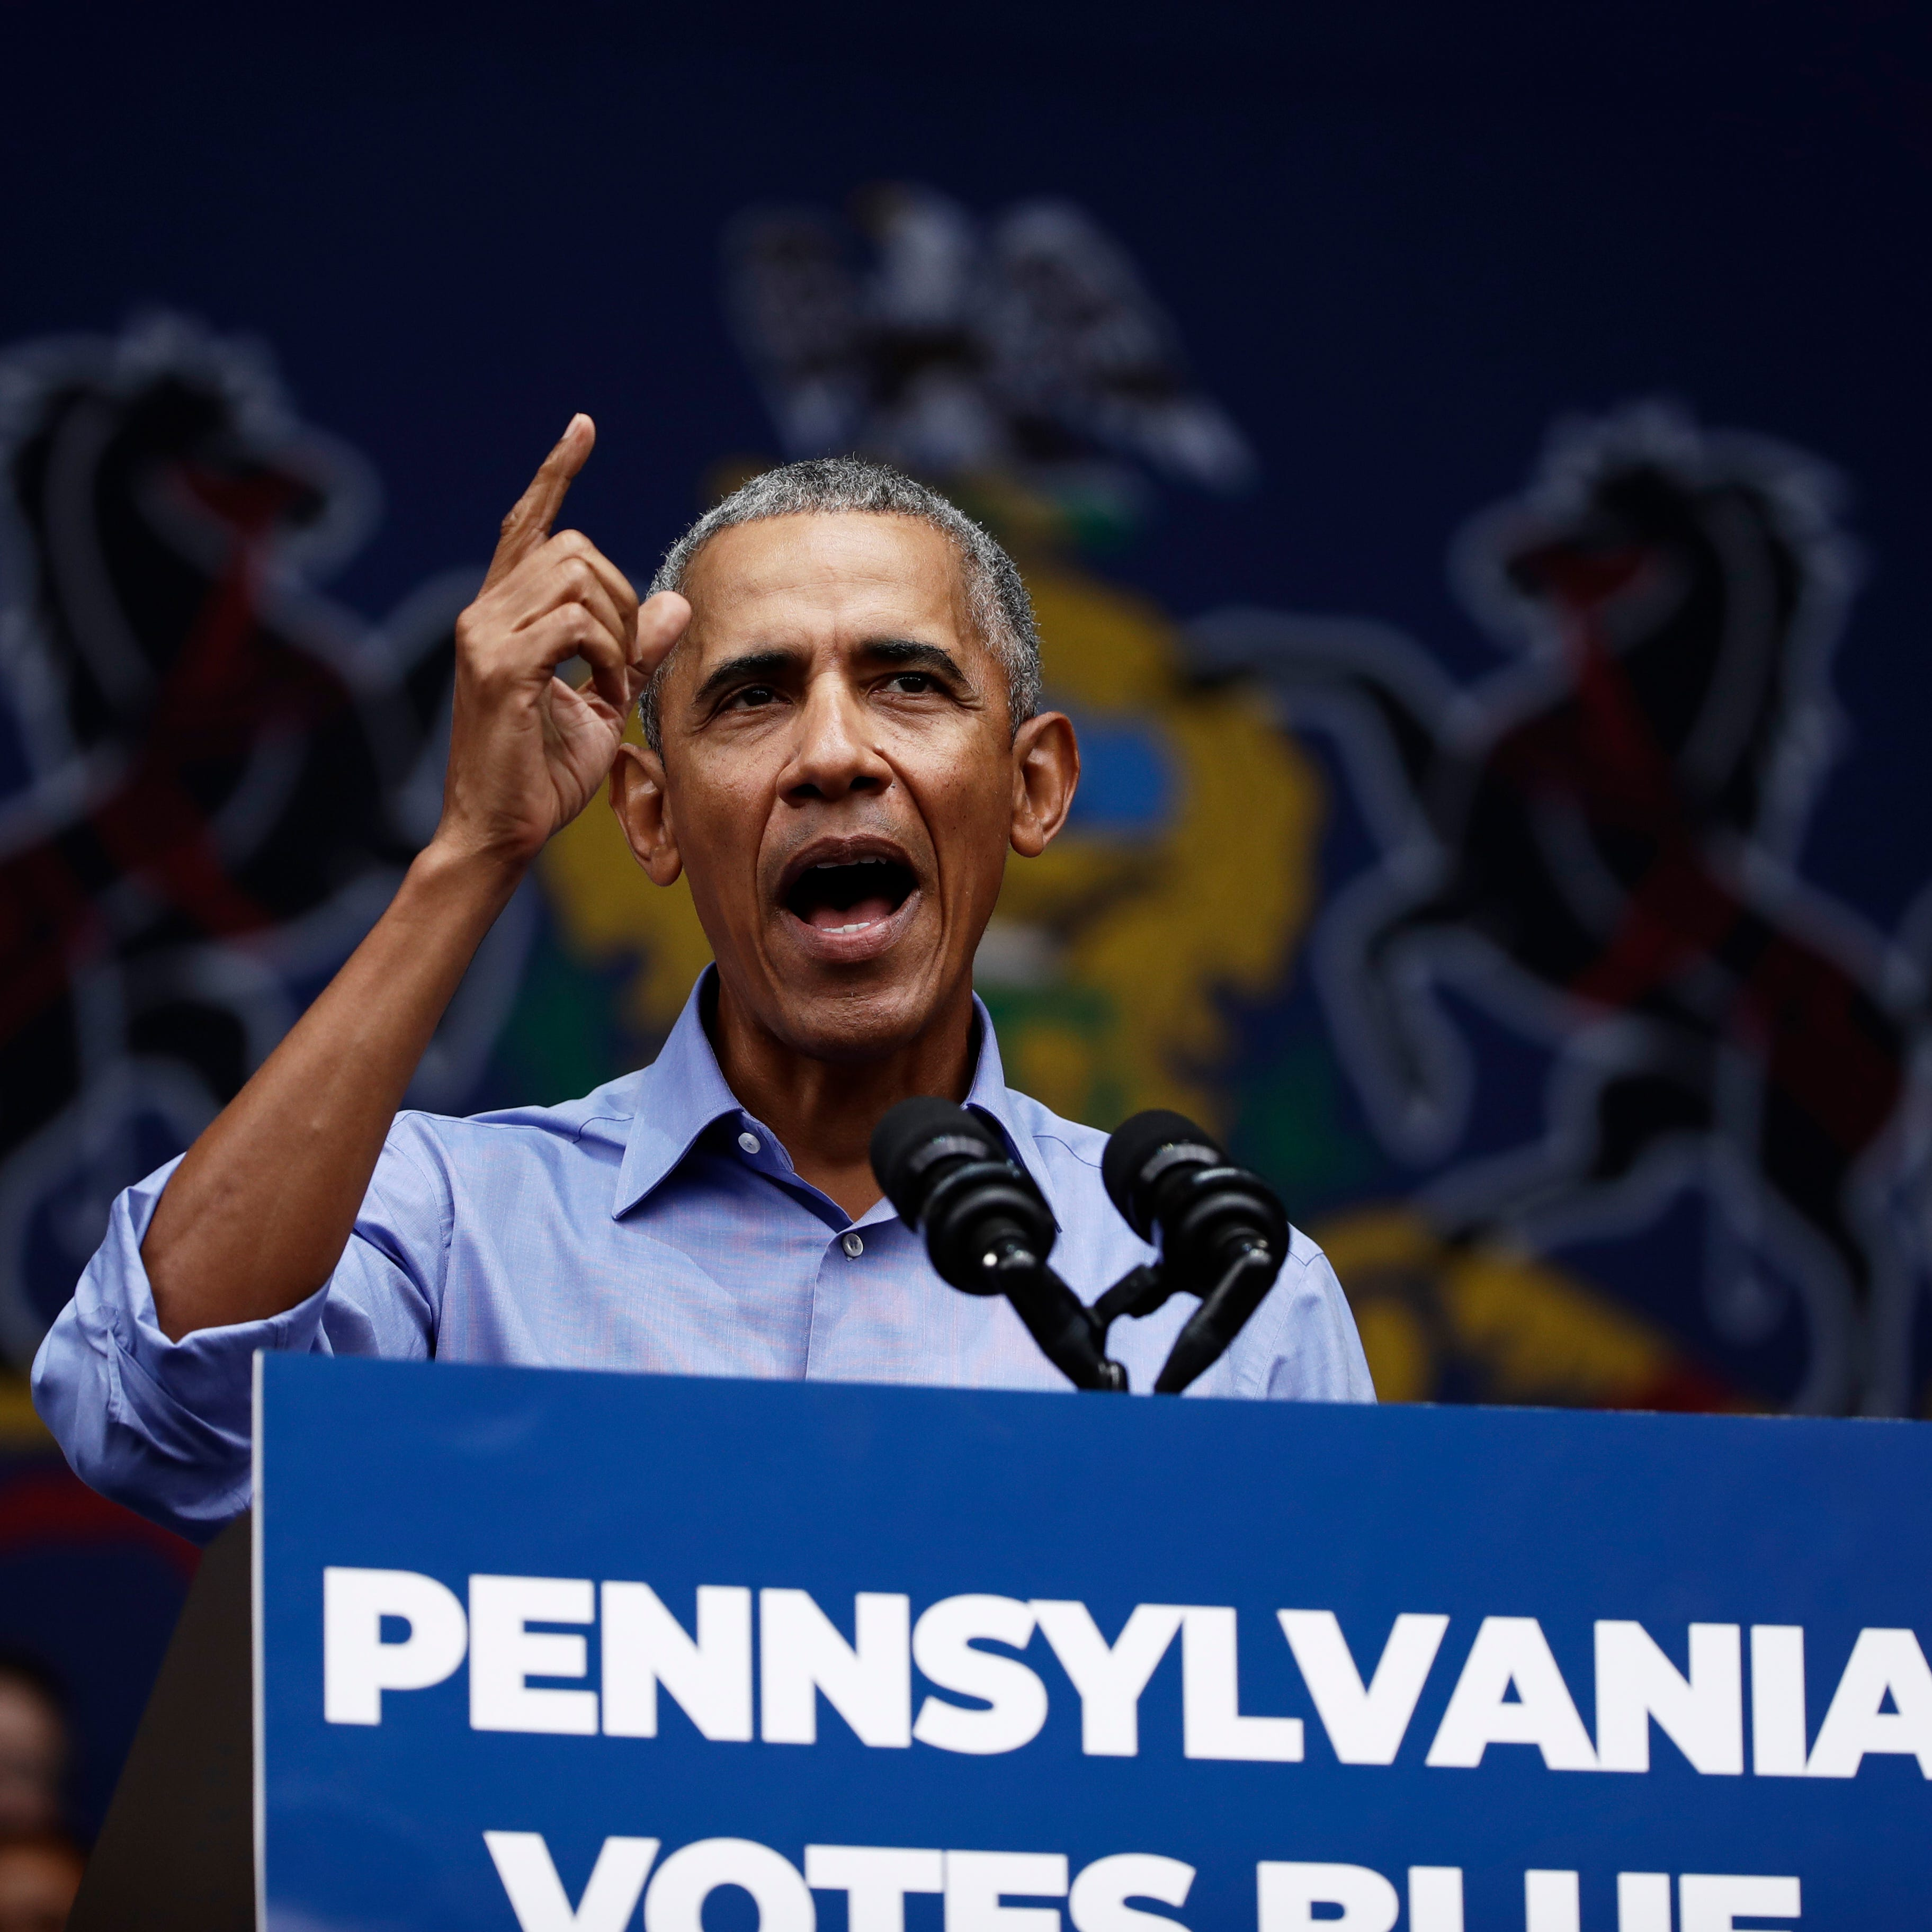 Barack Obama in Philly: Here's everyone he took to task in his stump speech